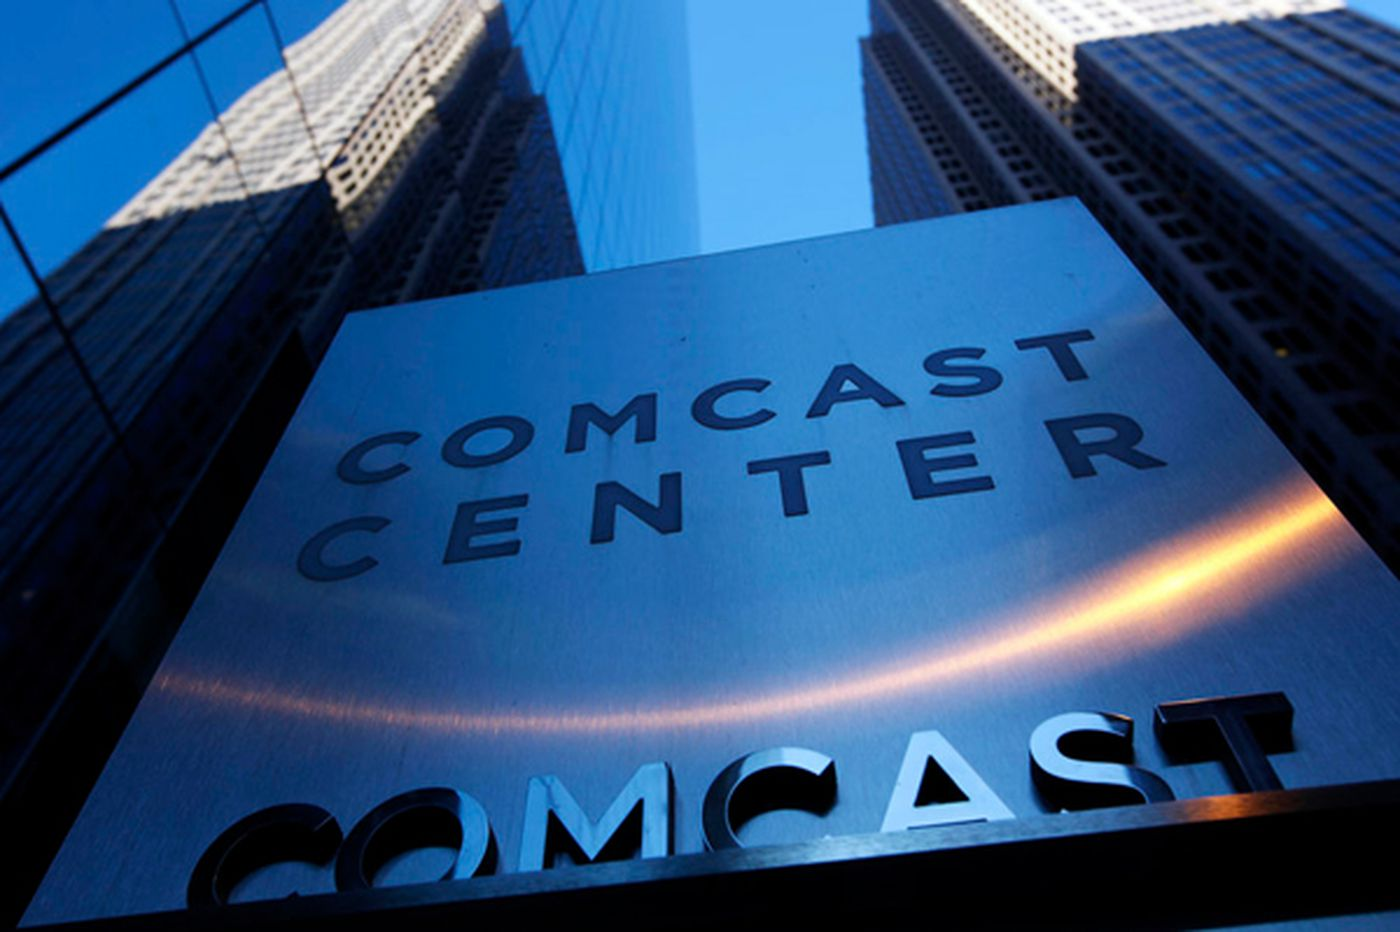 Comcast sues onetime employee over TV-viewership tracking software